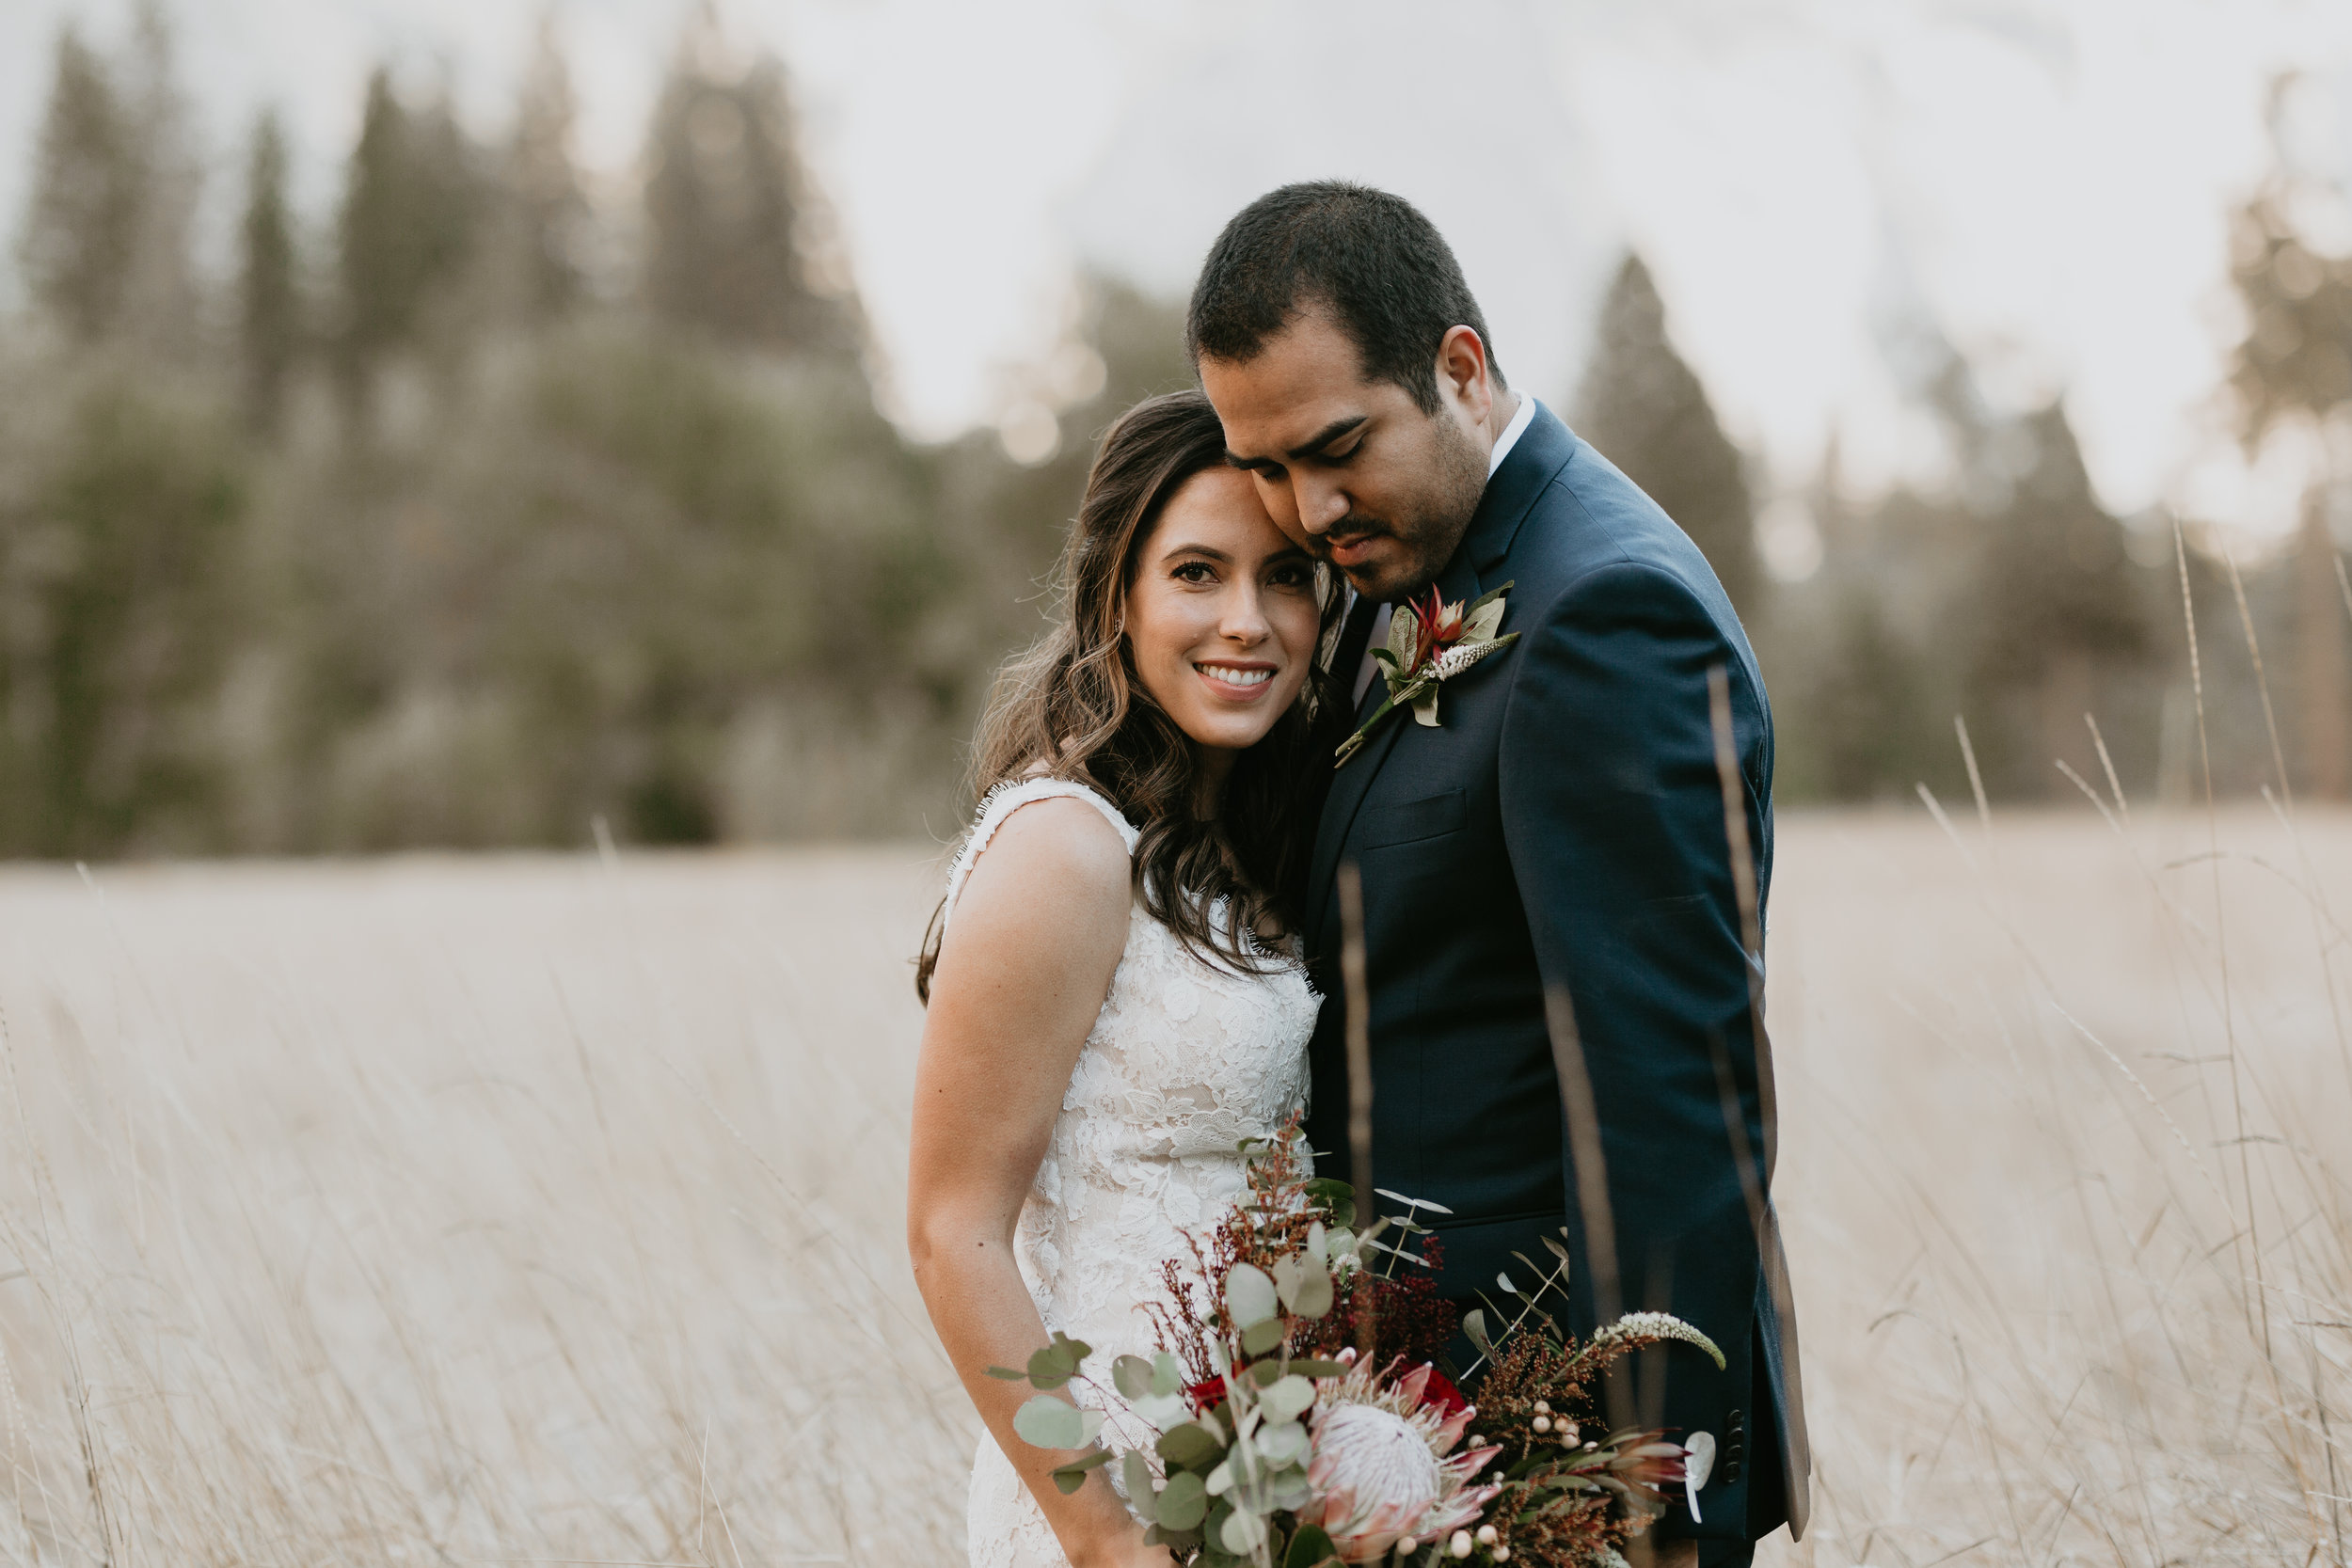 nicole-daacke-photography-intimate-elopement-wedding-yosemite-national-park-california-taft-point-sunset-photos-yosemite-valley-tunnel-view-first-look-sunrise-golden-granite-hiking-adventure-wedding-adventurous-elopement-photographer-10.jpg